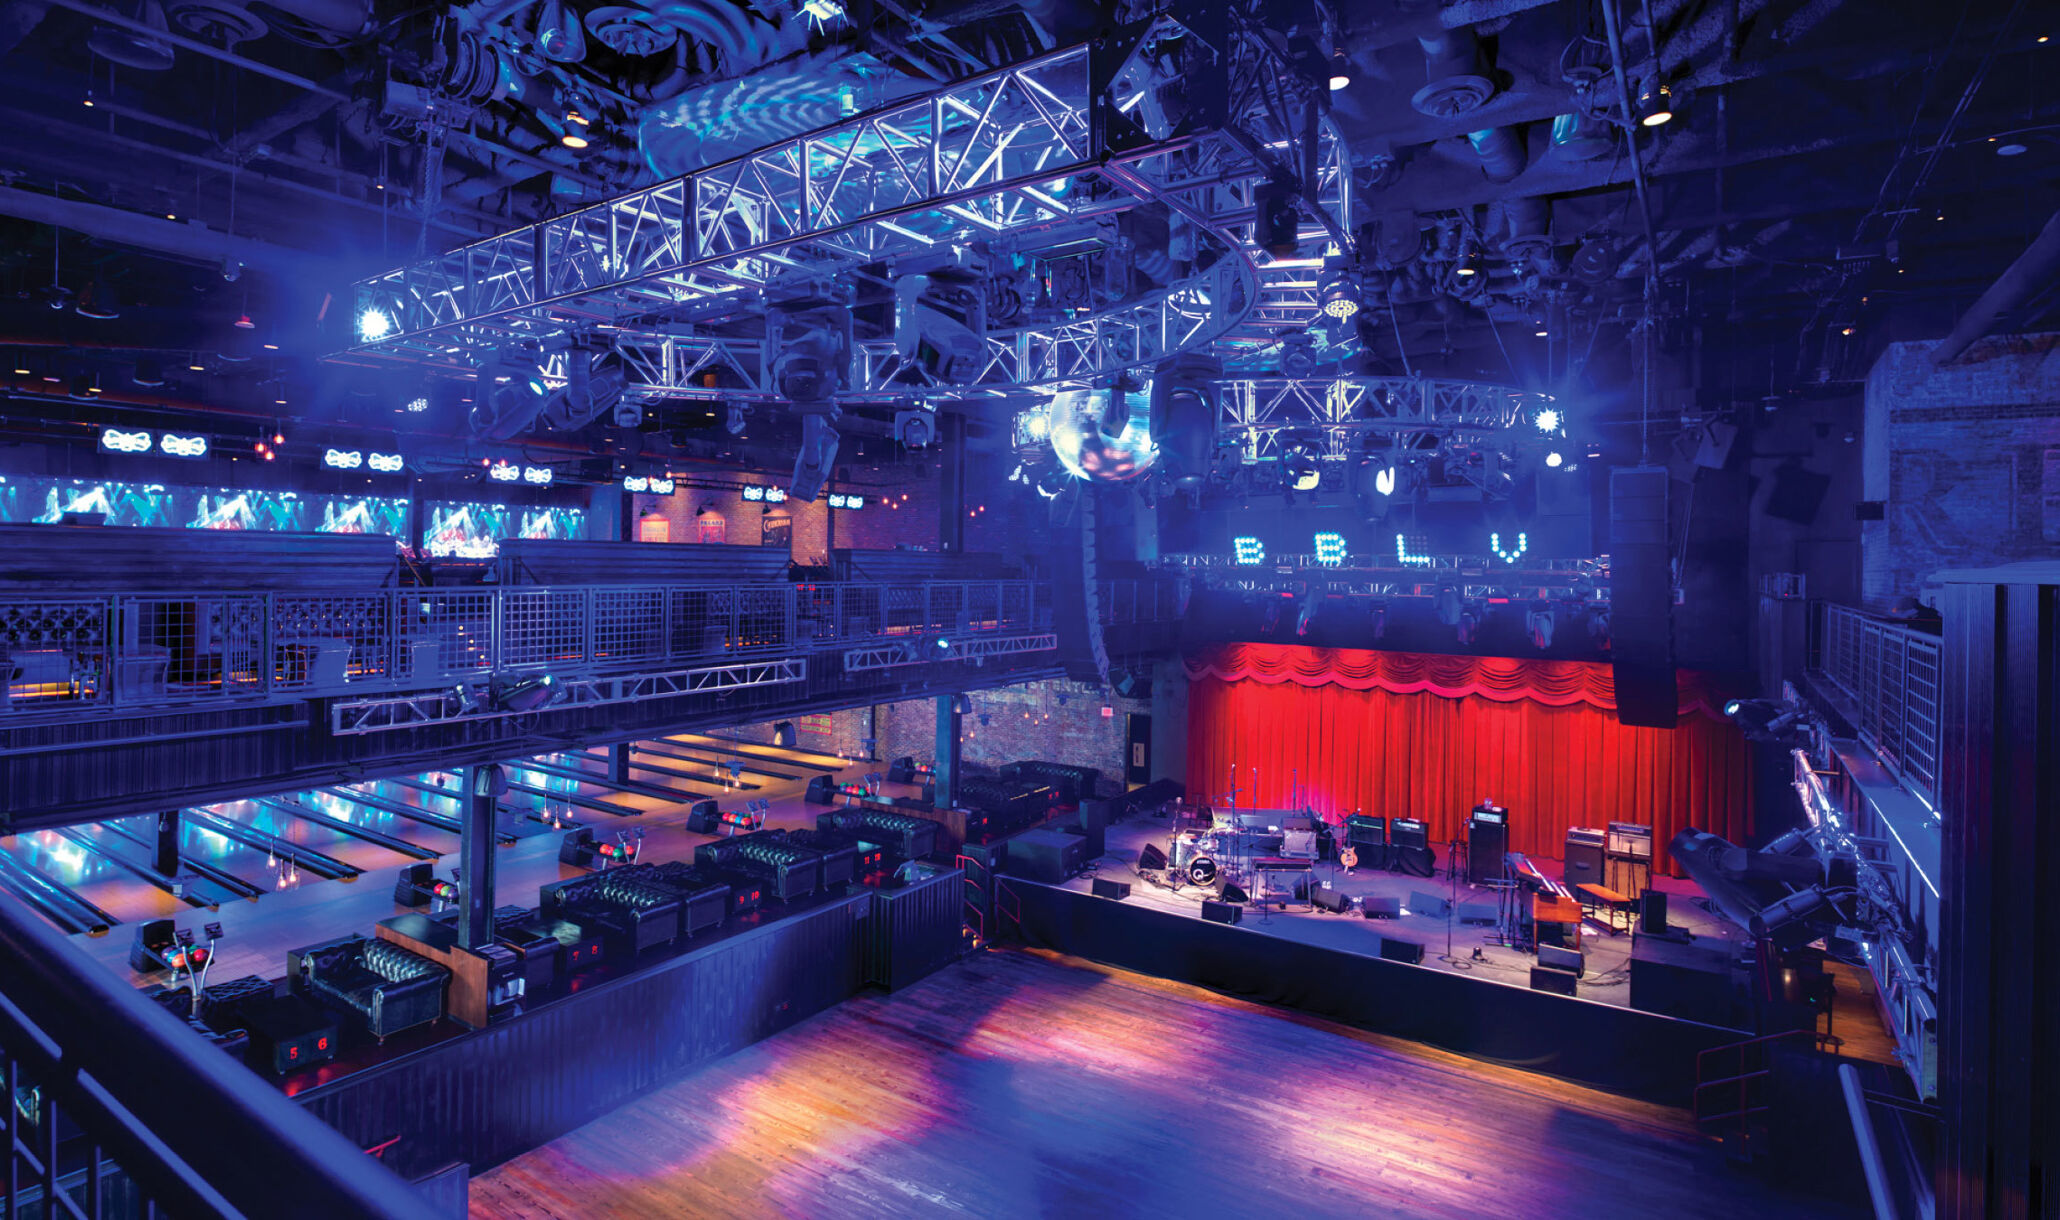 Ns Boutique Brooklyn Bowl Las Vegas Nv 16X9 04-3